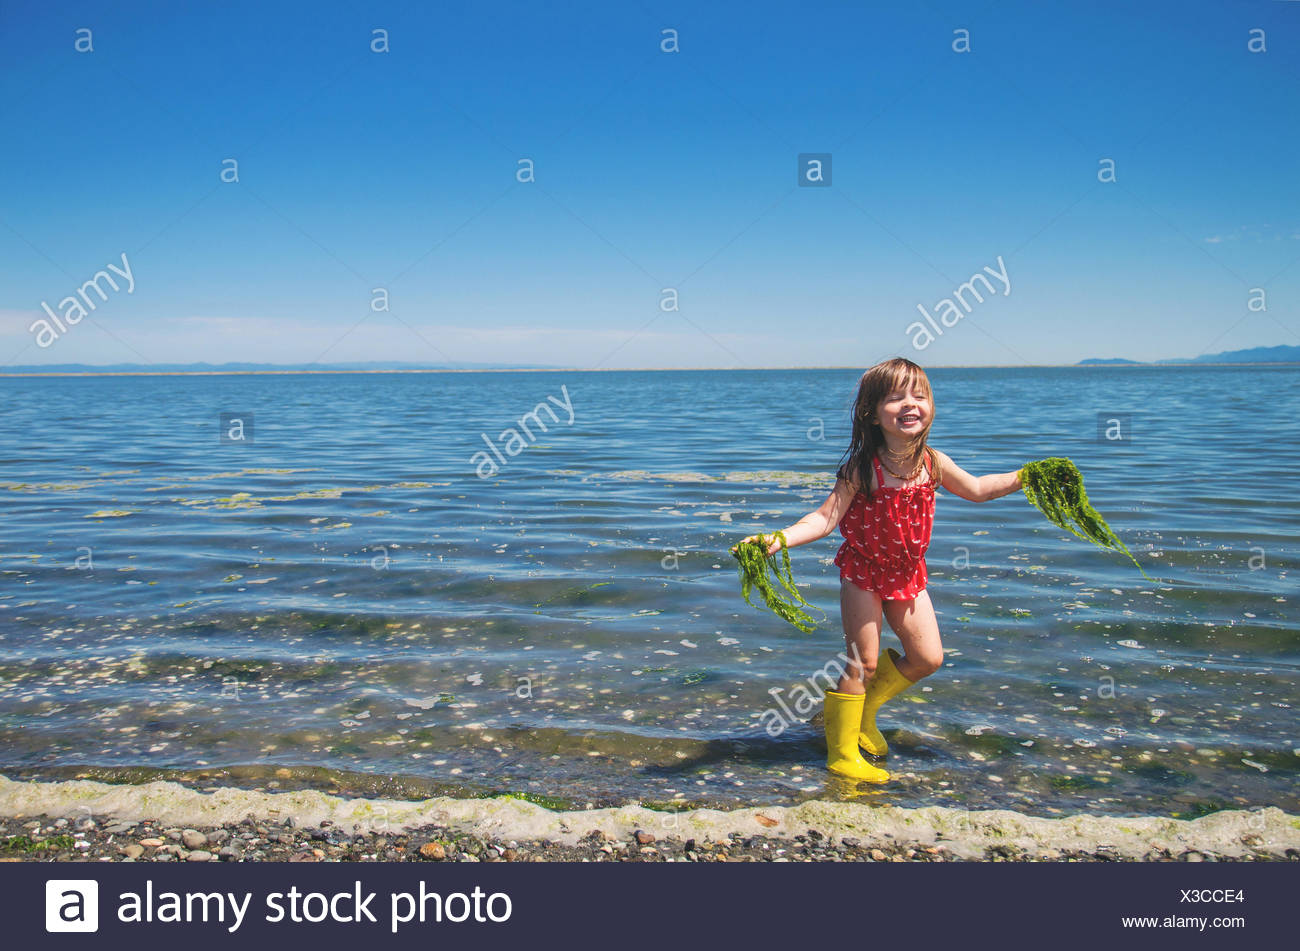 Girl collecting seaweed from the sea - Stock Image